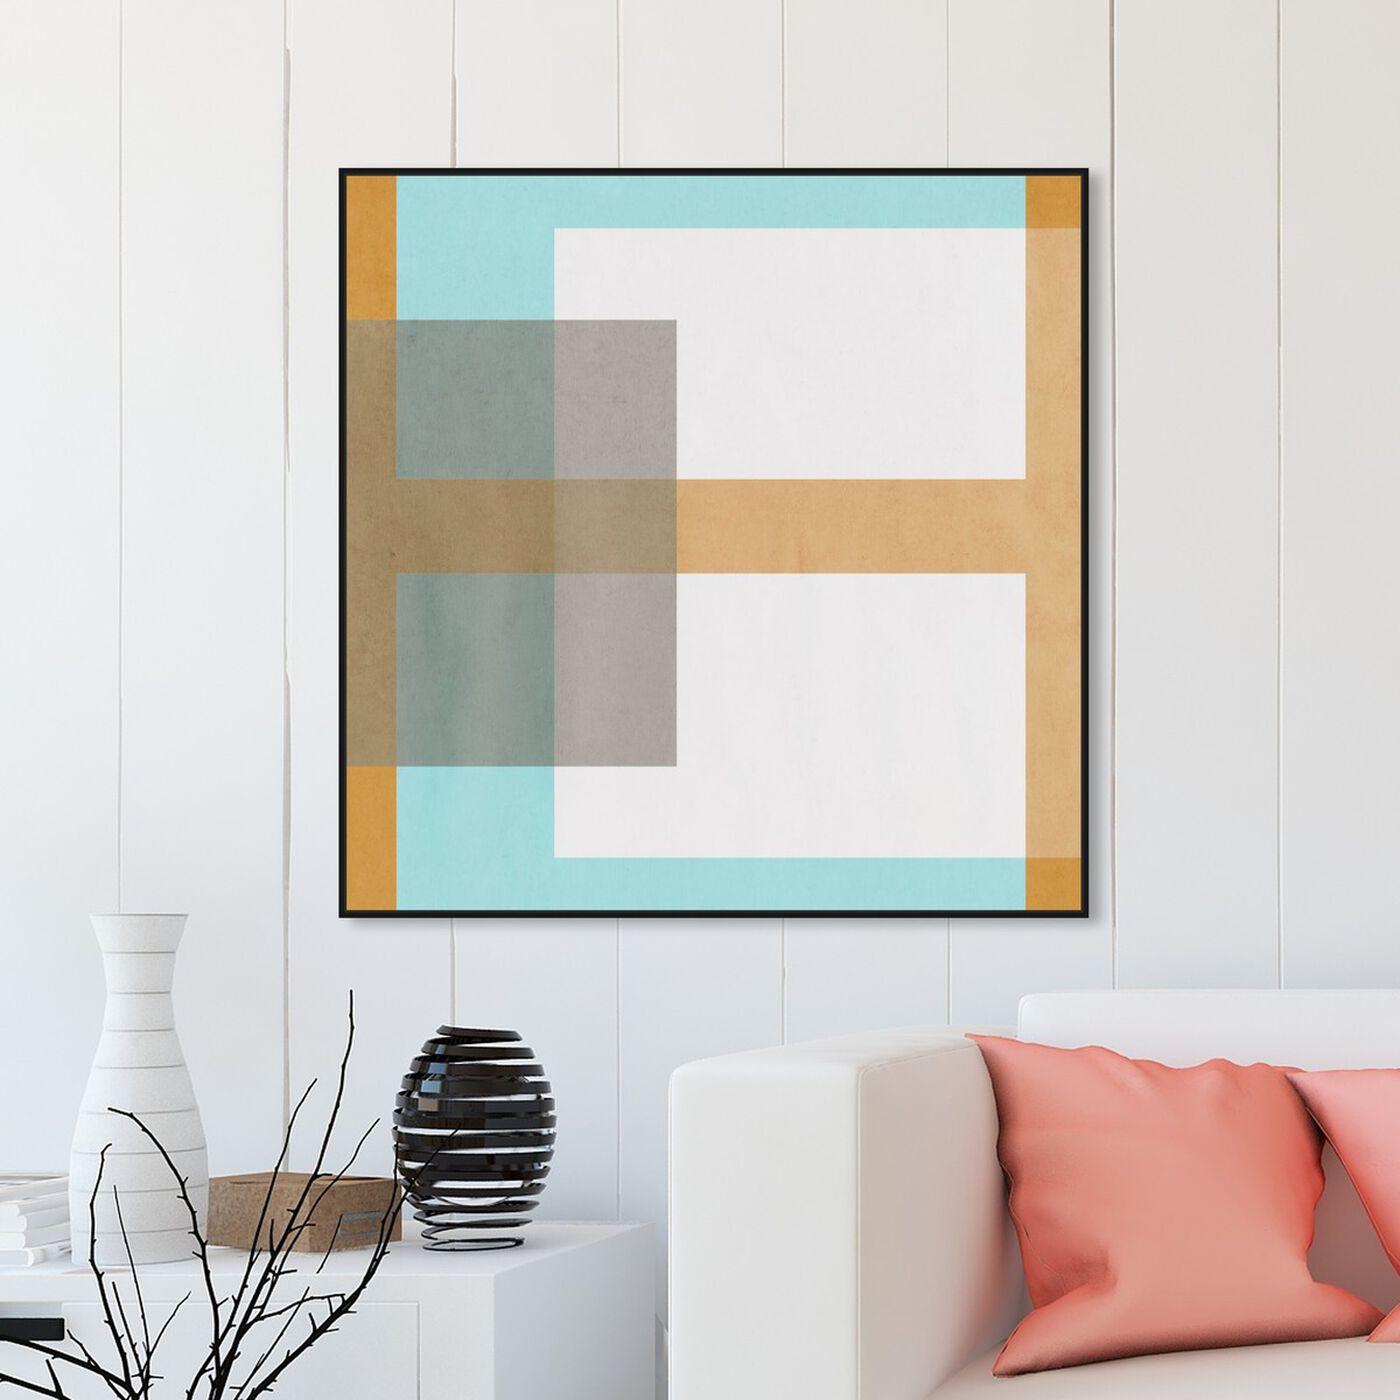 Hanging view of Cortado de Verano featuring abstract and geometric art.